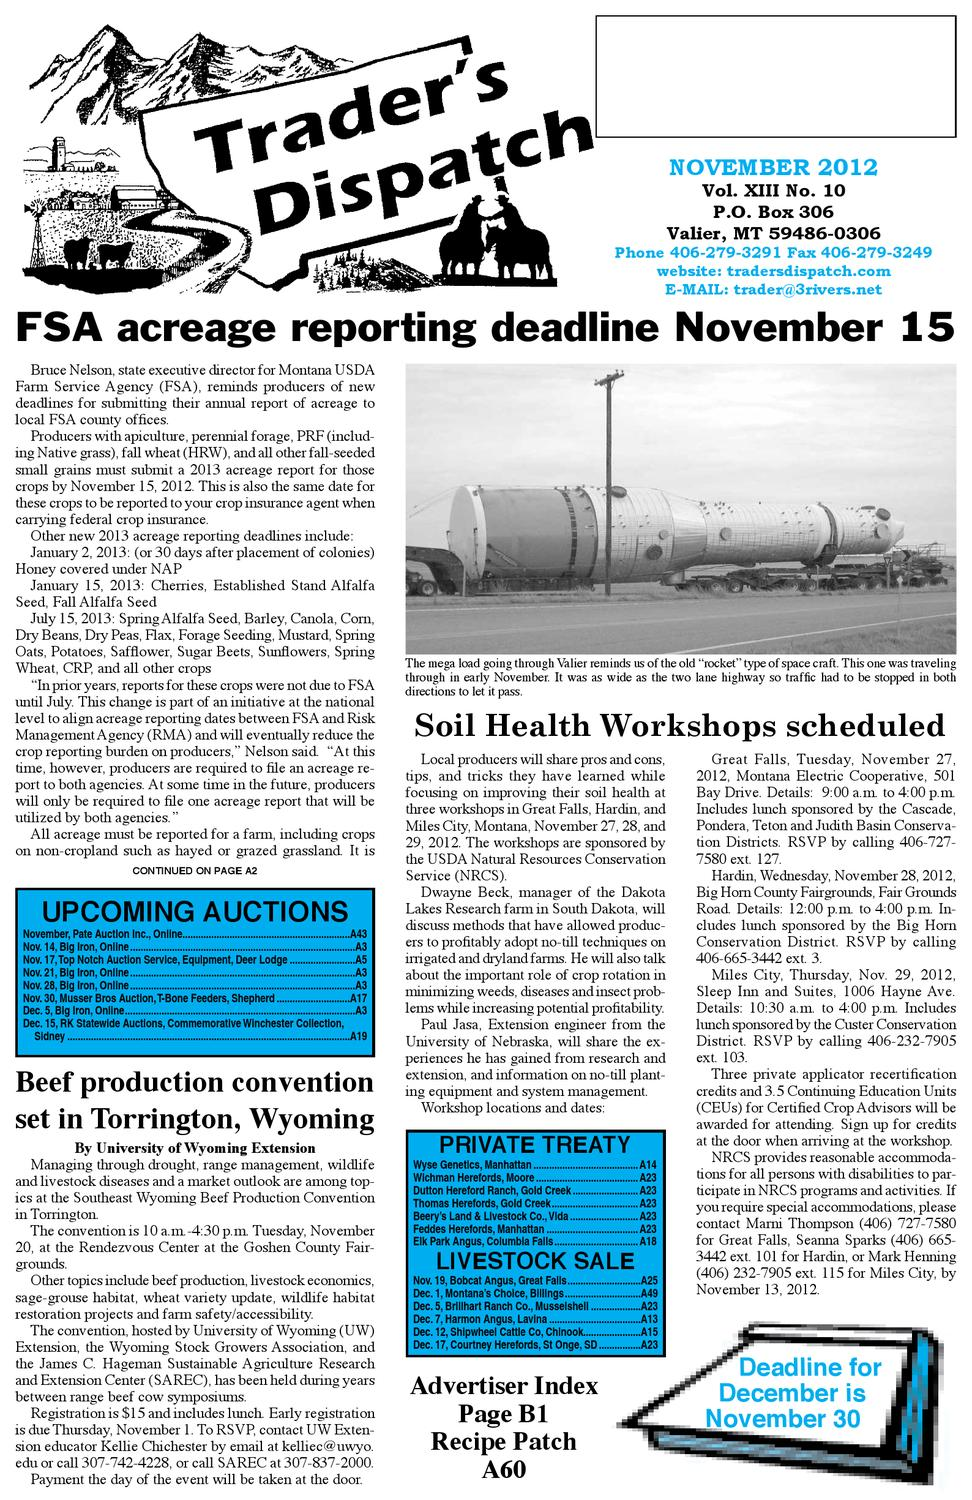 November 2012 by The Trader's Dispatch - issuu